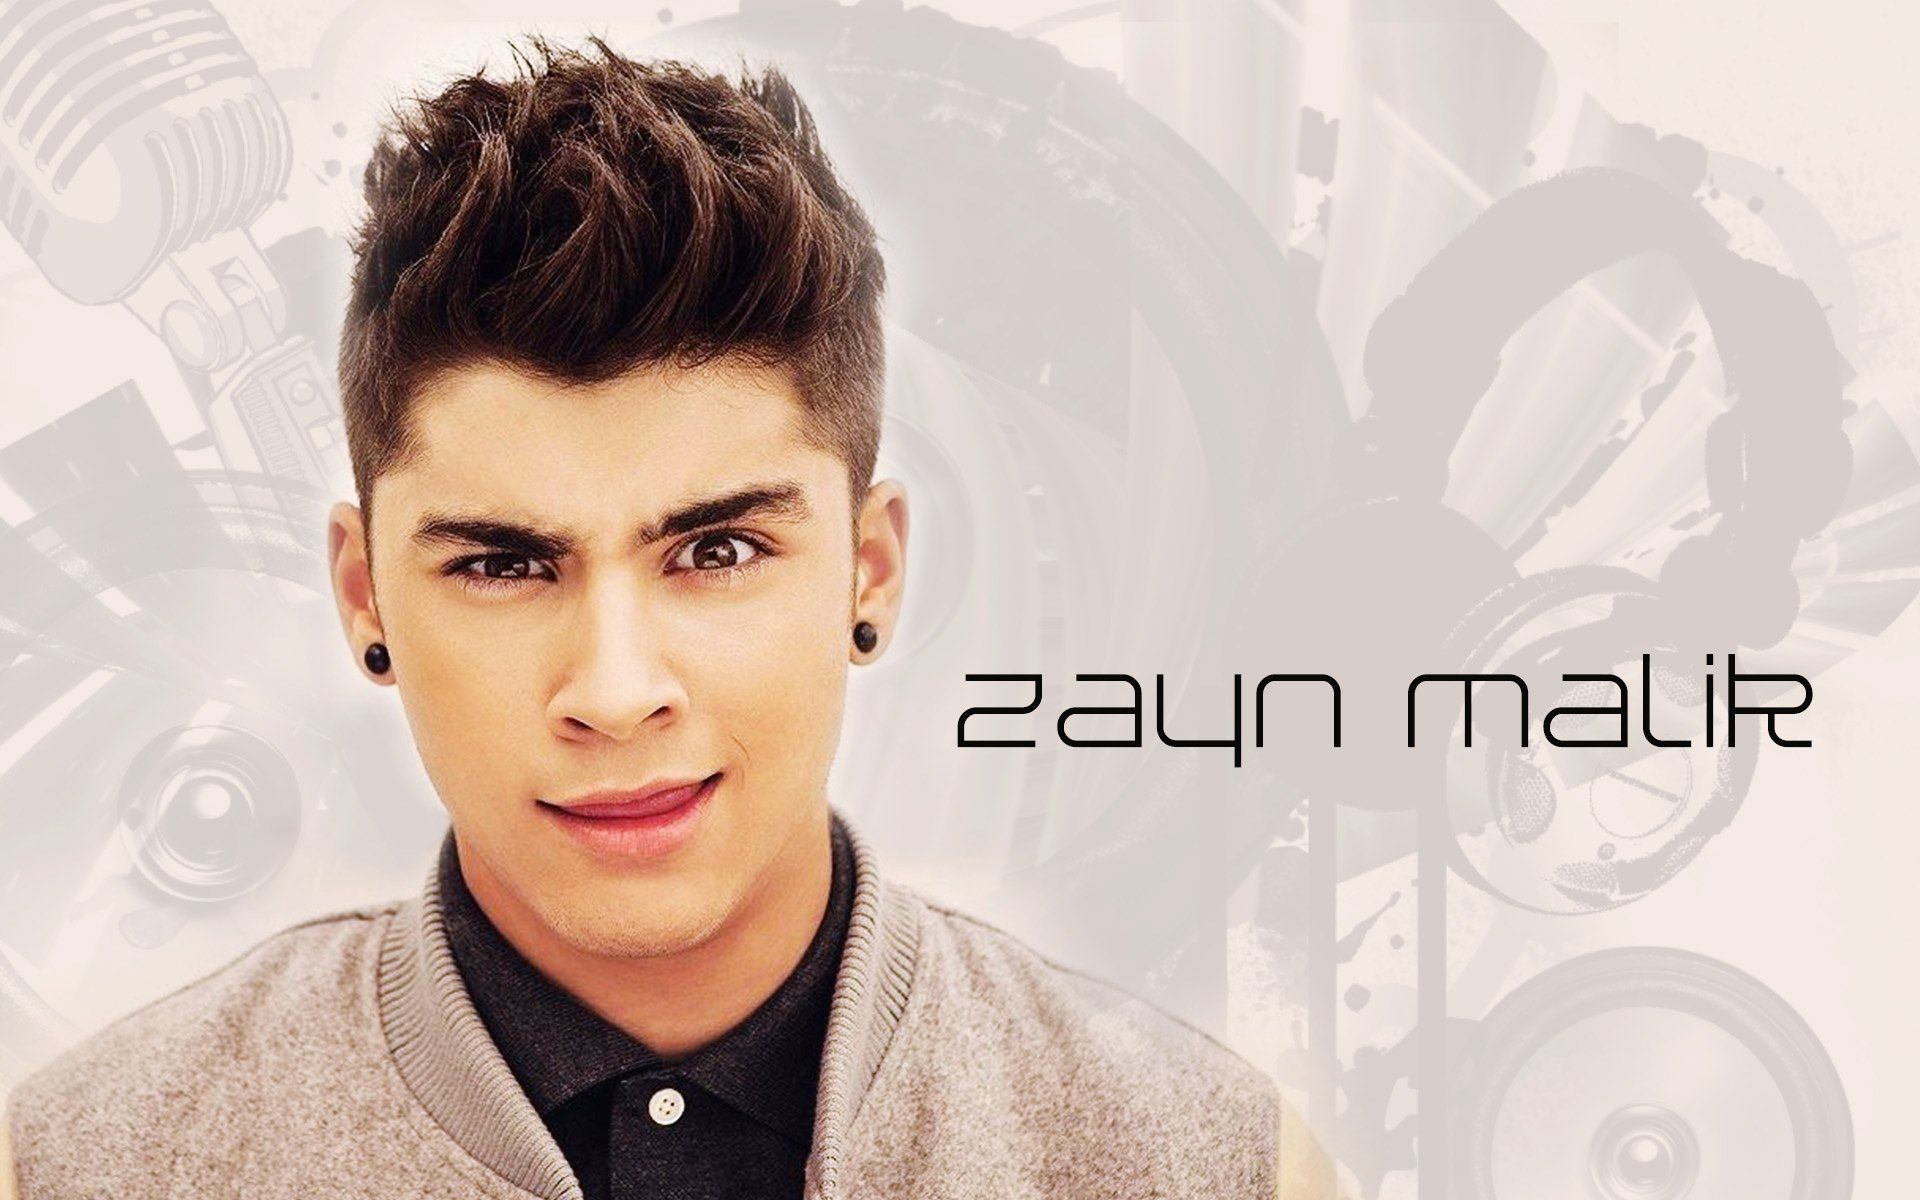 Zayn malik hd images get free top quality zayn malik hd images for zayn malik hd images get free top quality zayn malik hd images for your desktop pc background ios or android mobile phones at wowhdbackgrounds thecheapjerseys Images